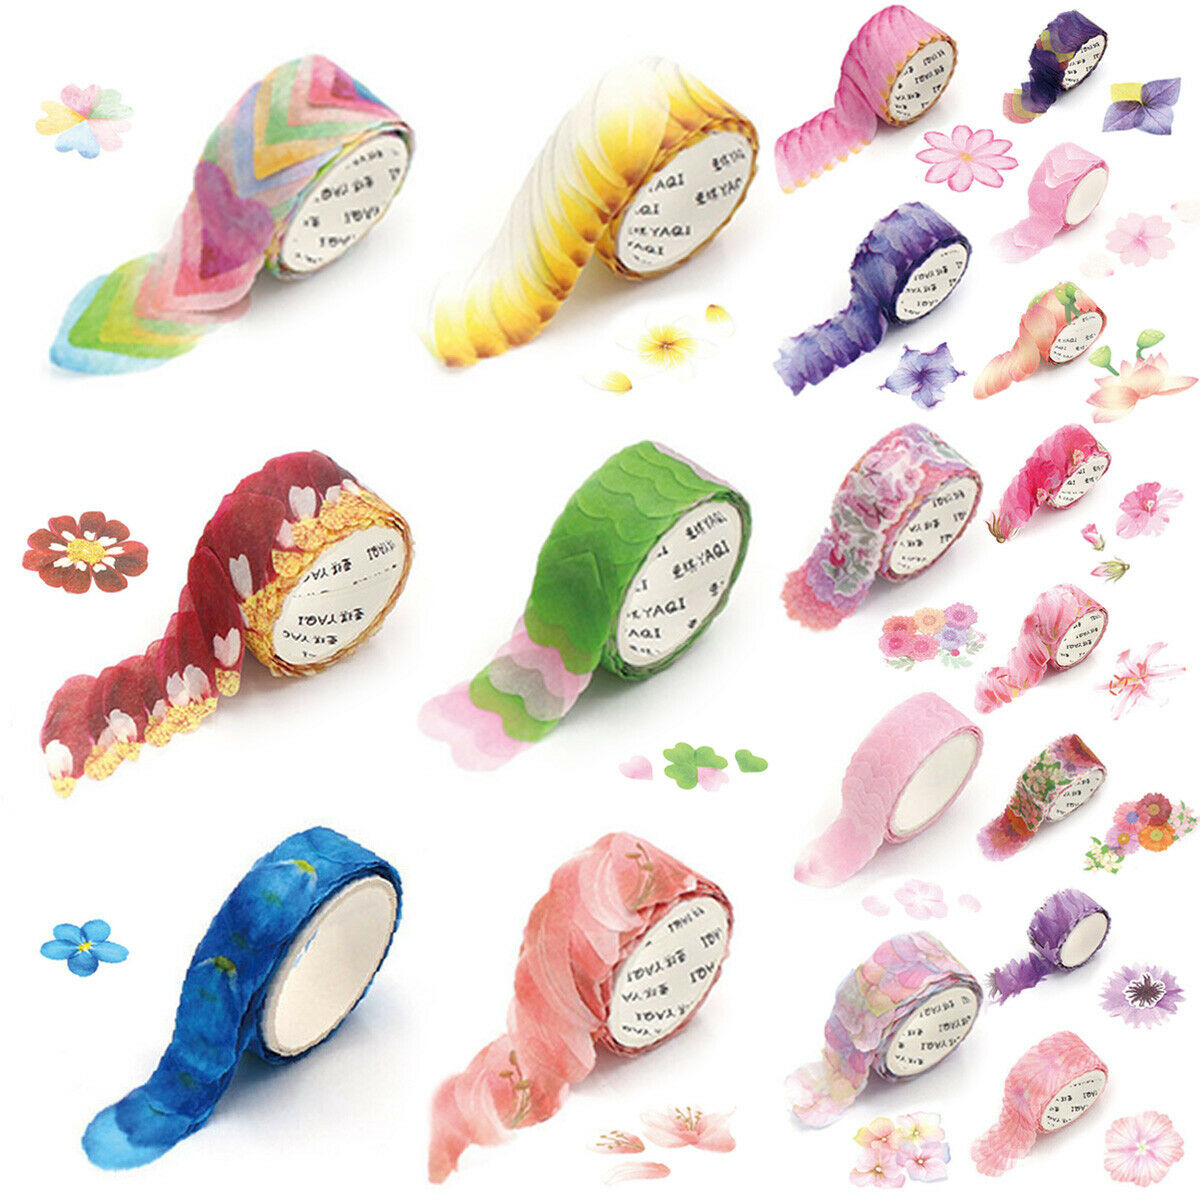 200PCS/Roll Masking Petals Tape Washi Tape Scrapbook Sticker Sticky Paper Flower